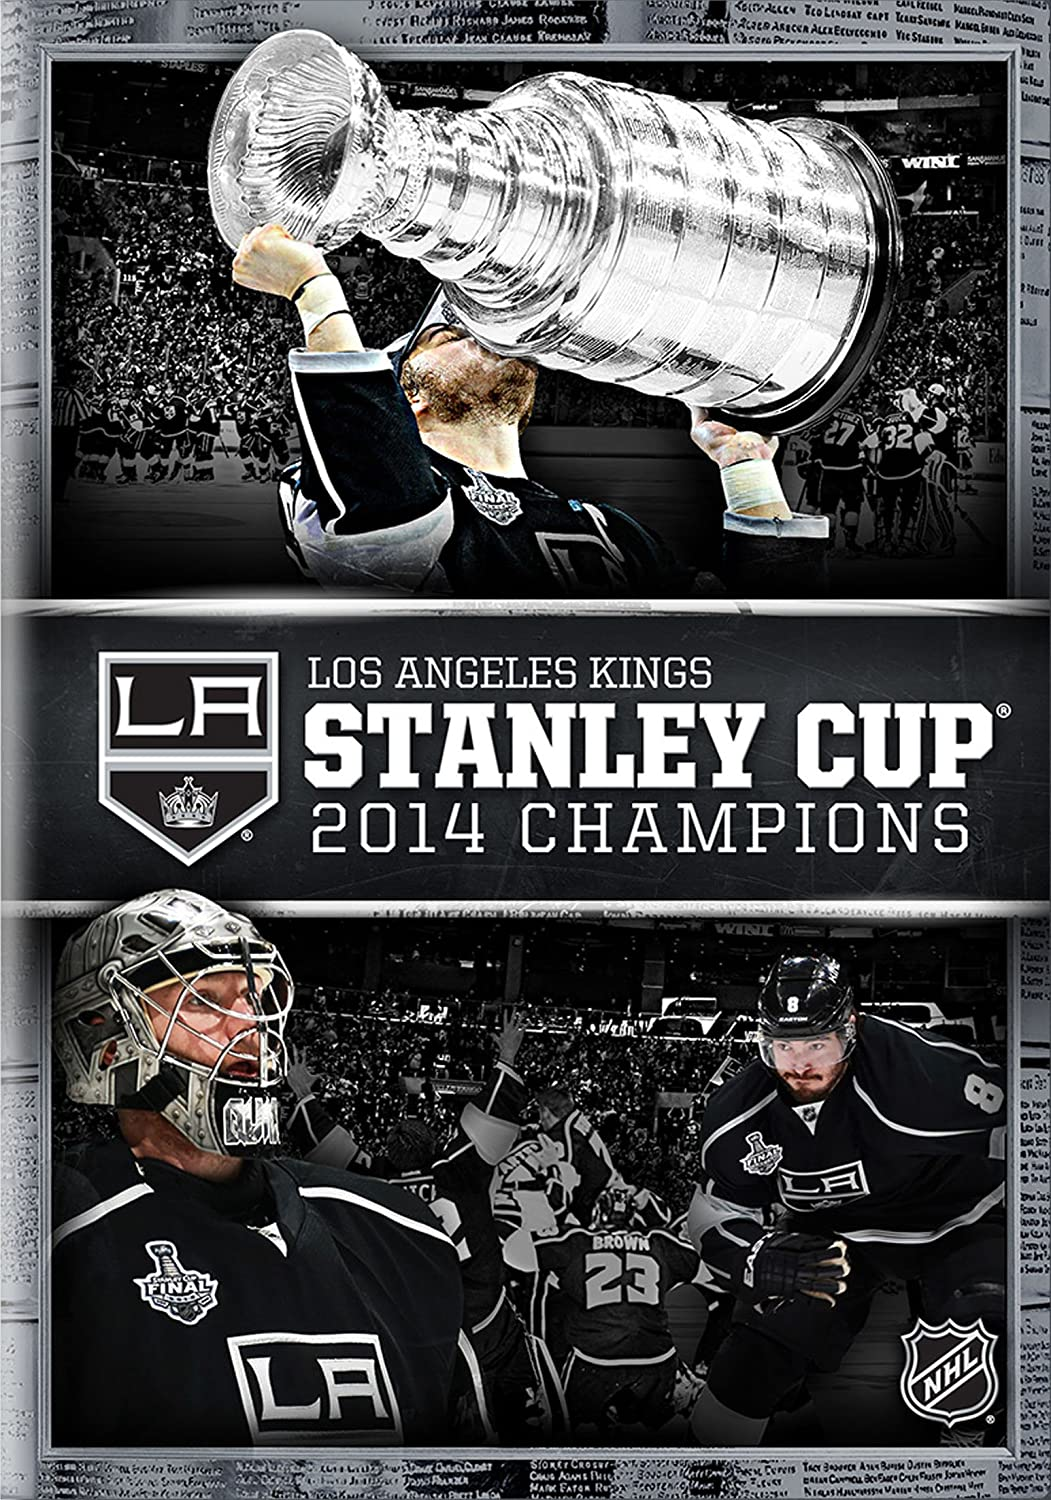 Los Angeles Kings 2014 Championship DVD